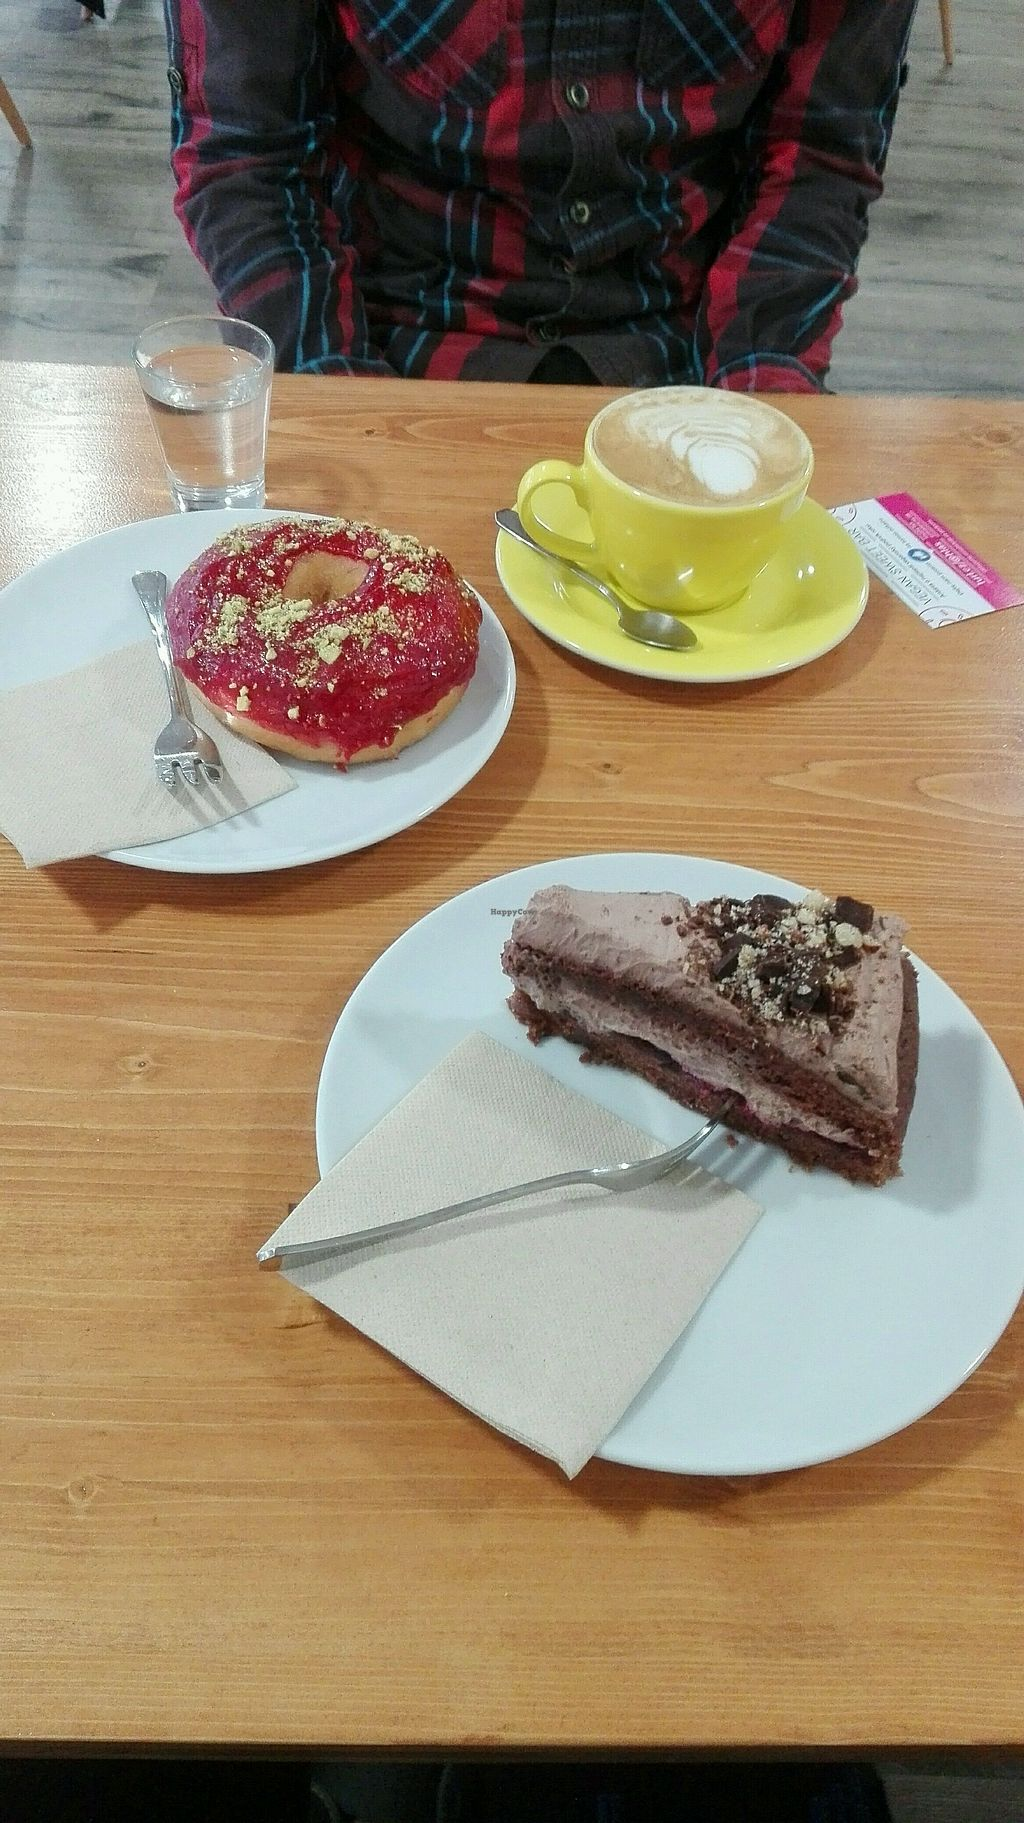 """Photo of Vegan Sweet Bar  by <a href=""""/members/profile/Skvivel"""">Skvivel</a> <br/>raspberry donut, chocolate cake and cappuccino with vanilla soy milk <br/> November 17, 2017  - <a href='/contact/abuse/image/105011/326441'>Report</a>"""